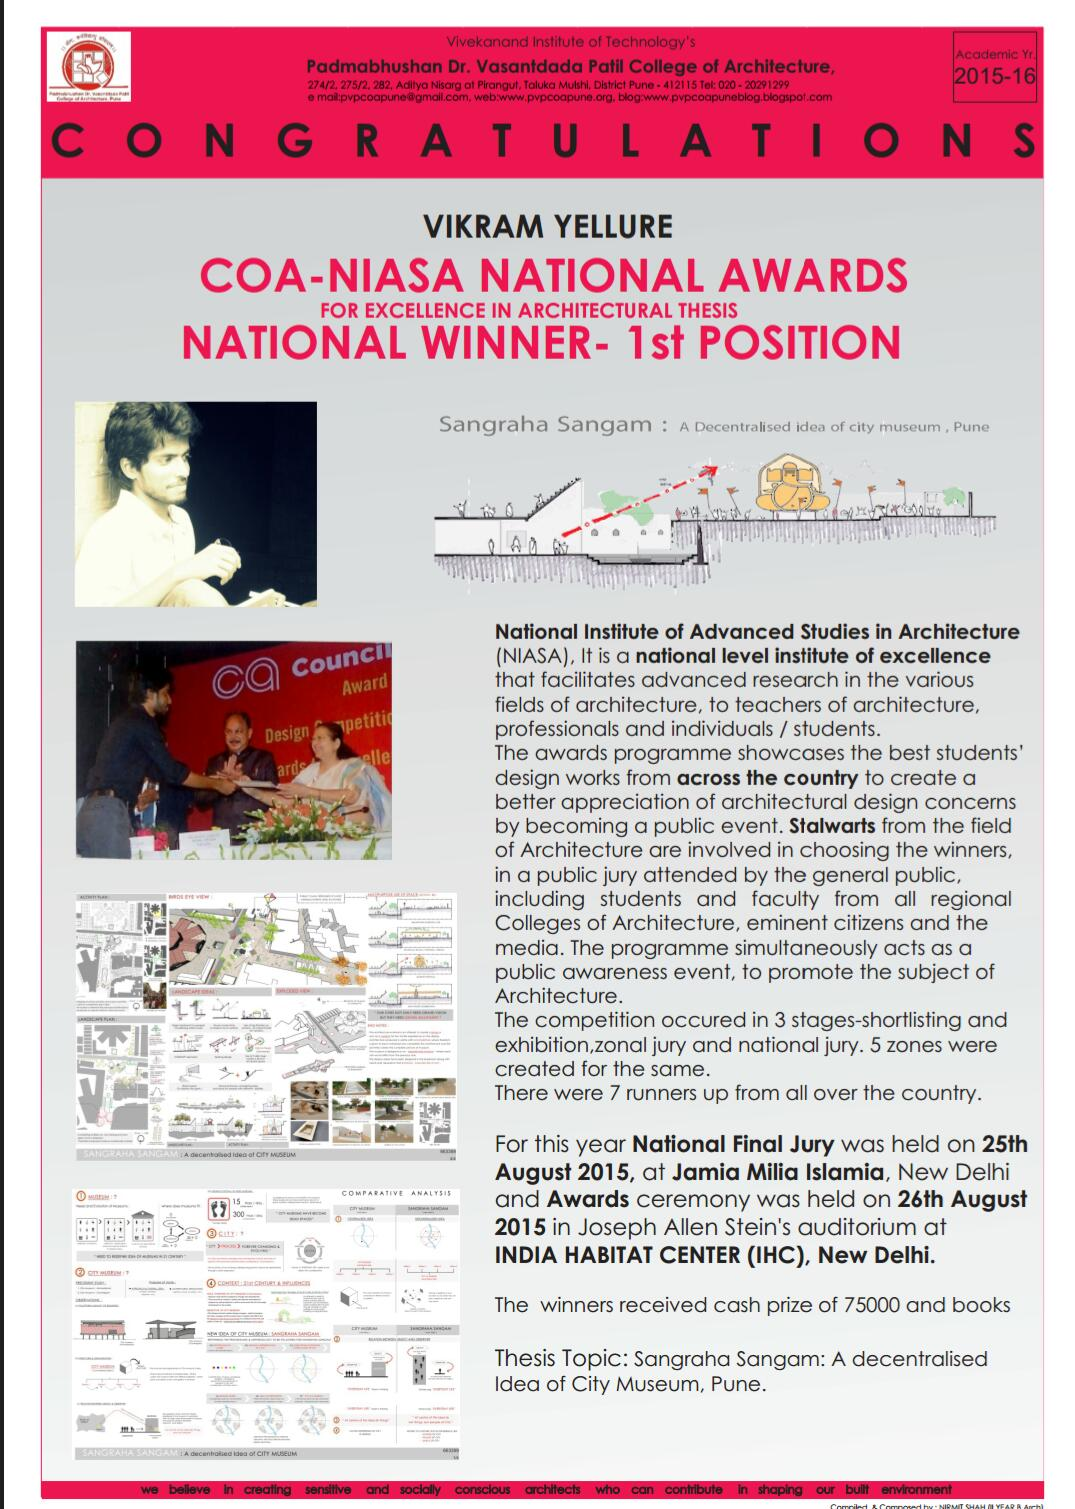 niasa thesis awards 2012